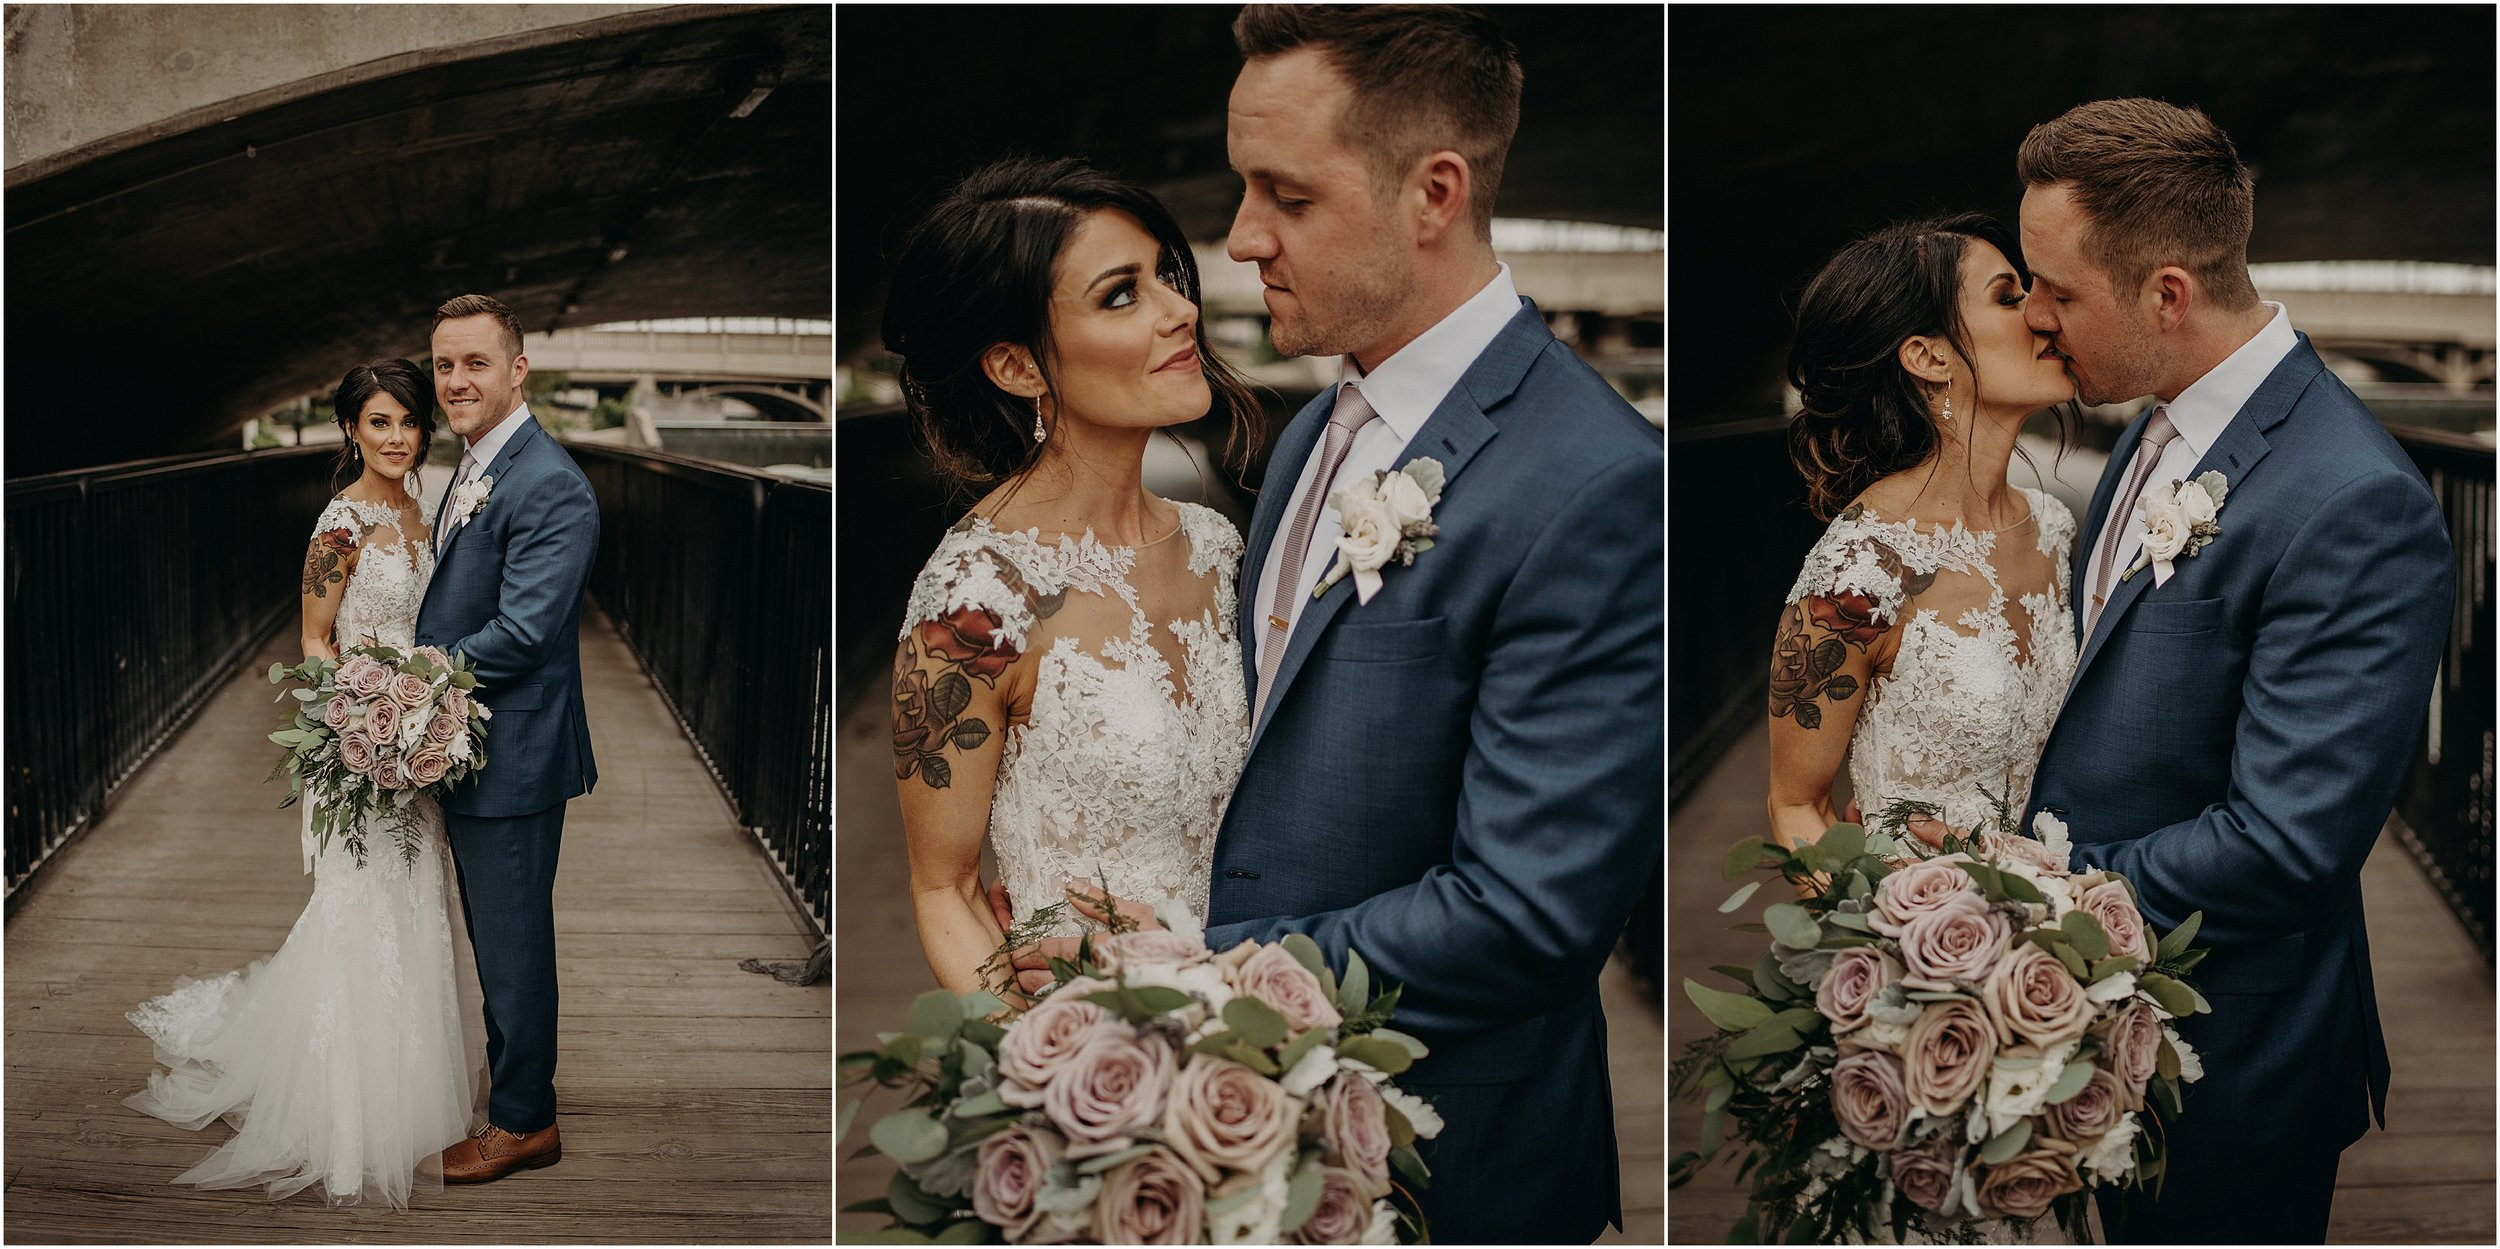 Romantic and urban wedding couple portraits